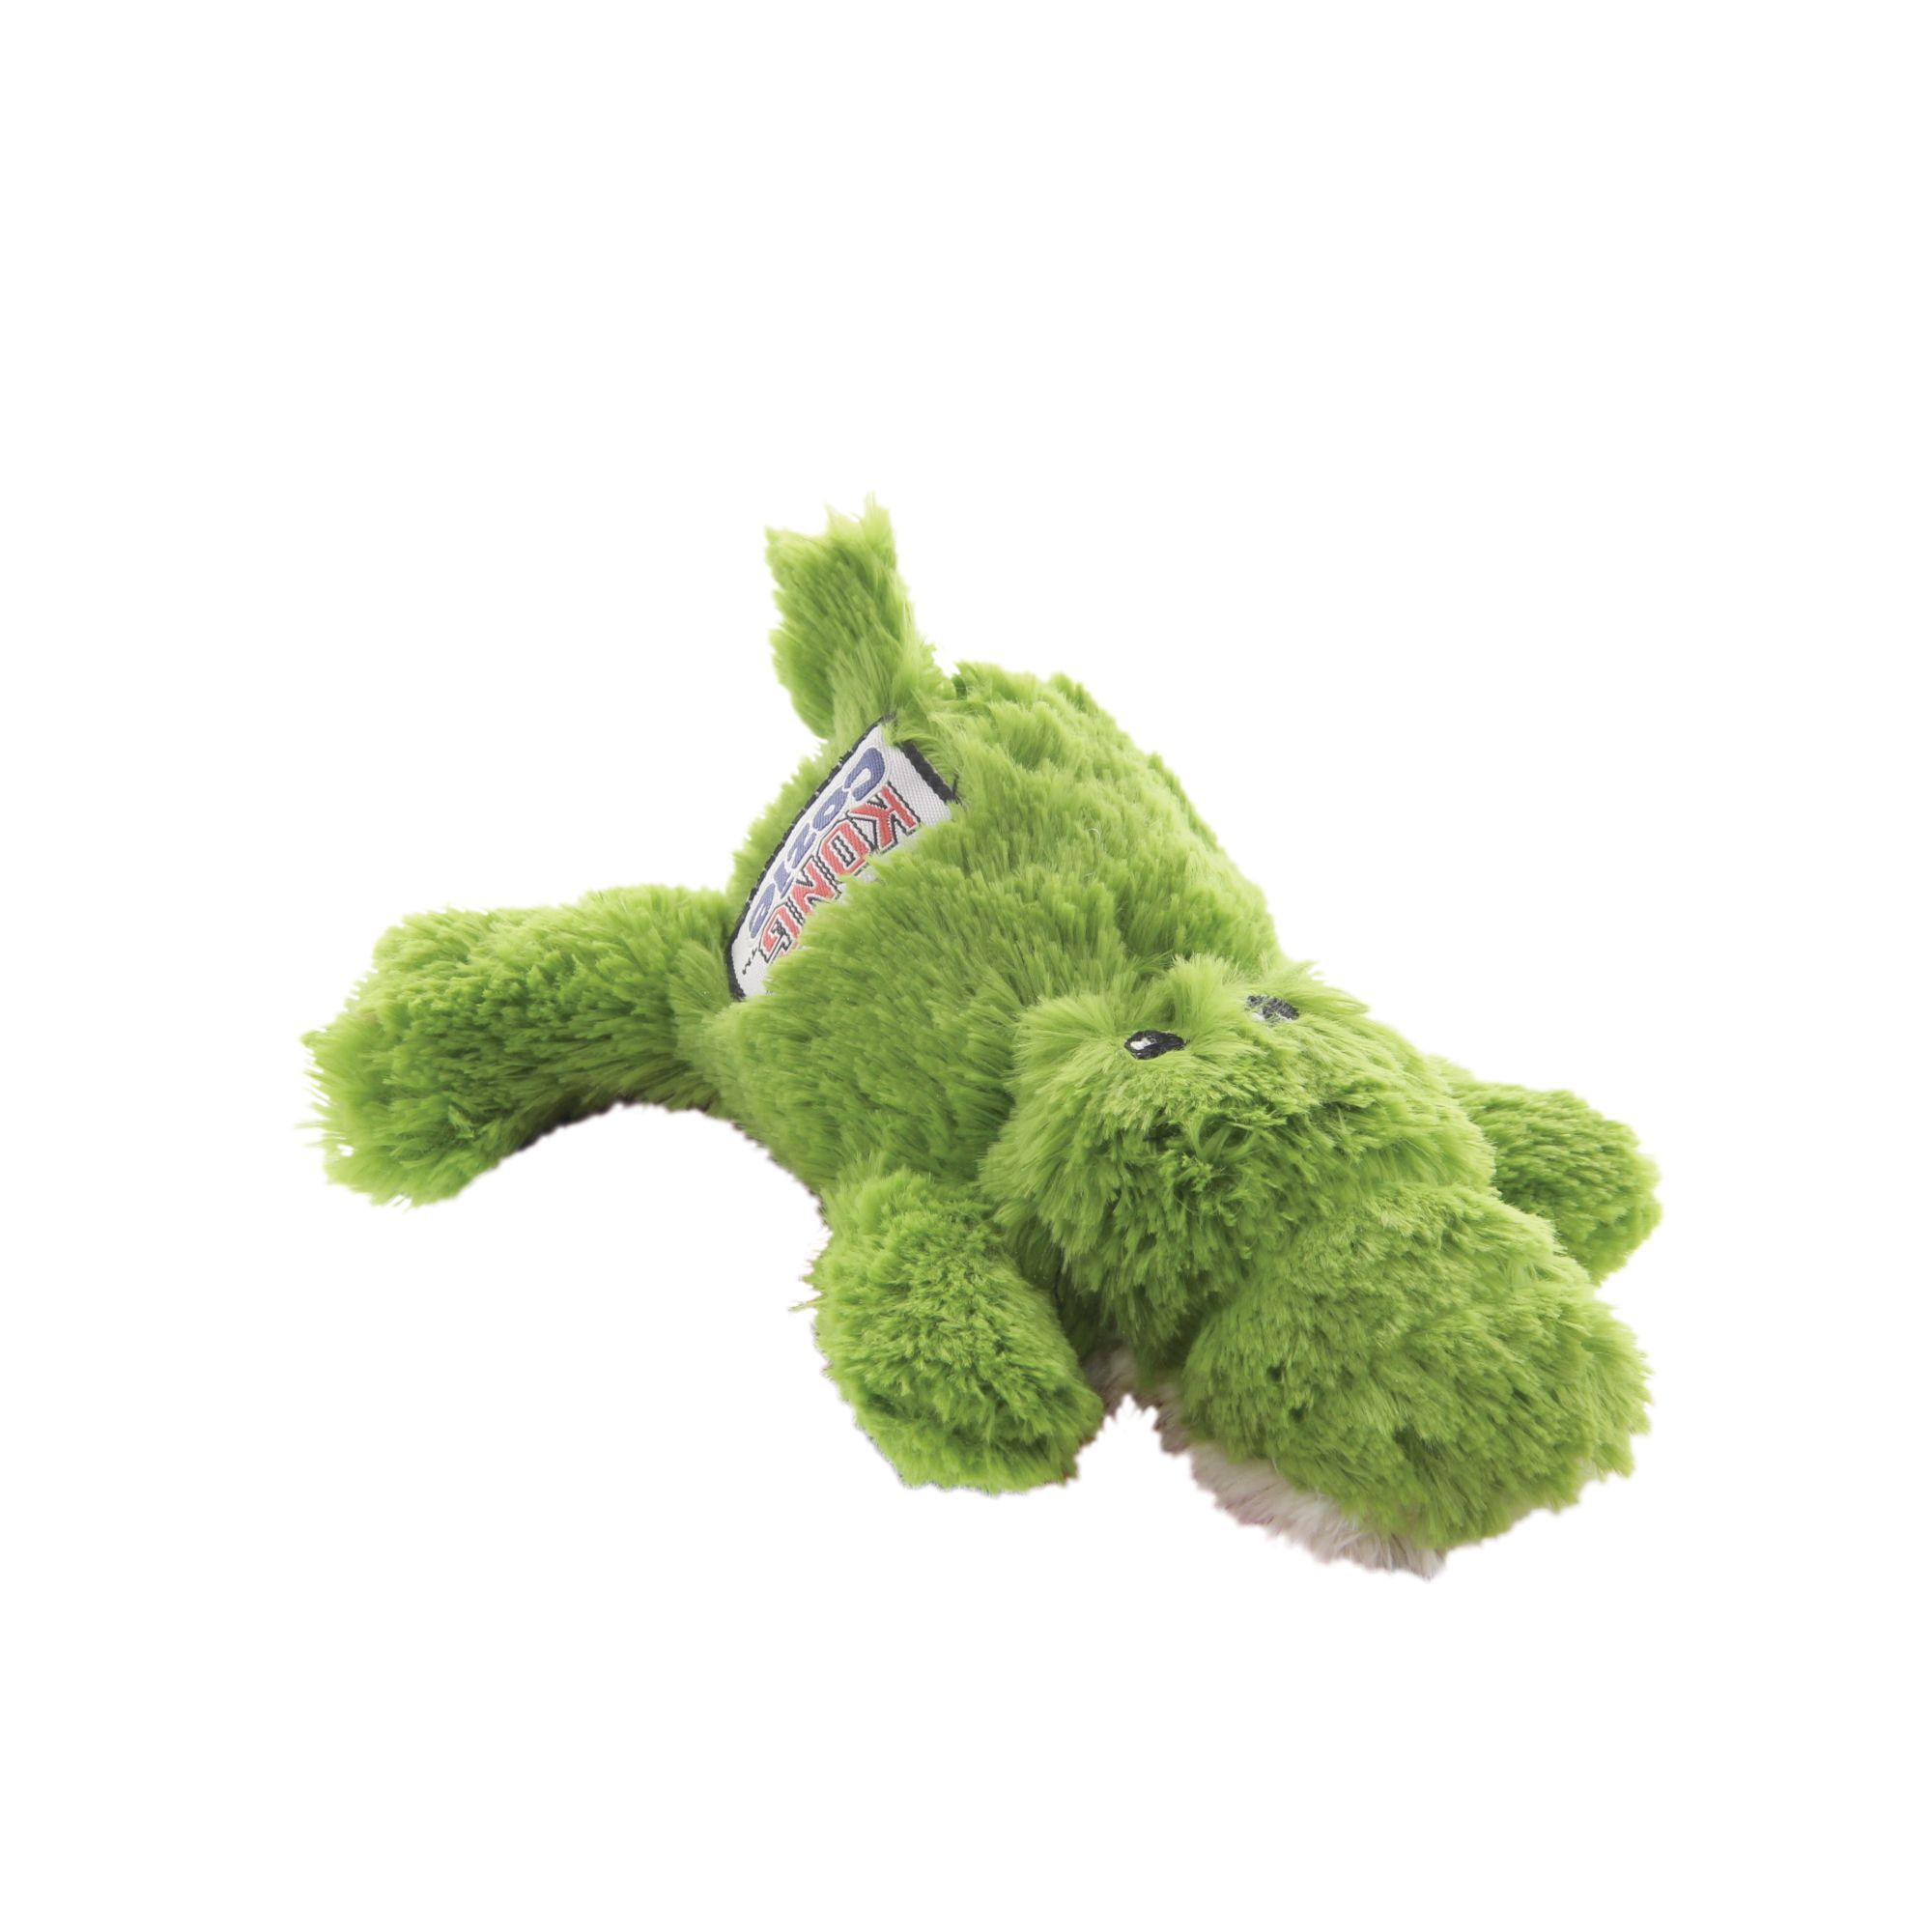 Kong Ali The Alligator Dog Toy Plush Squeaker Size Small